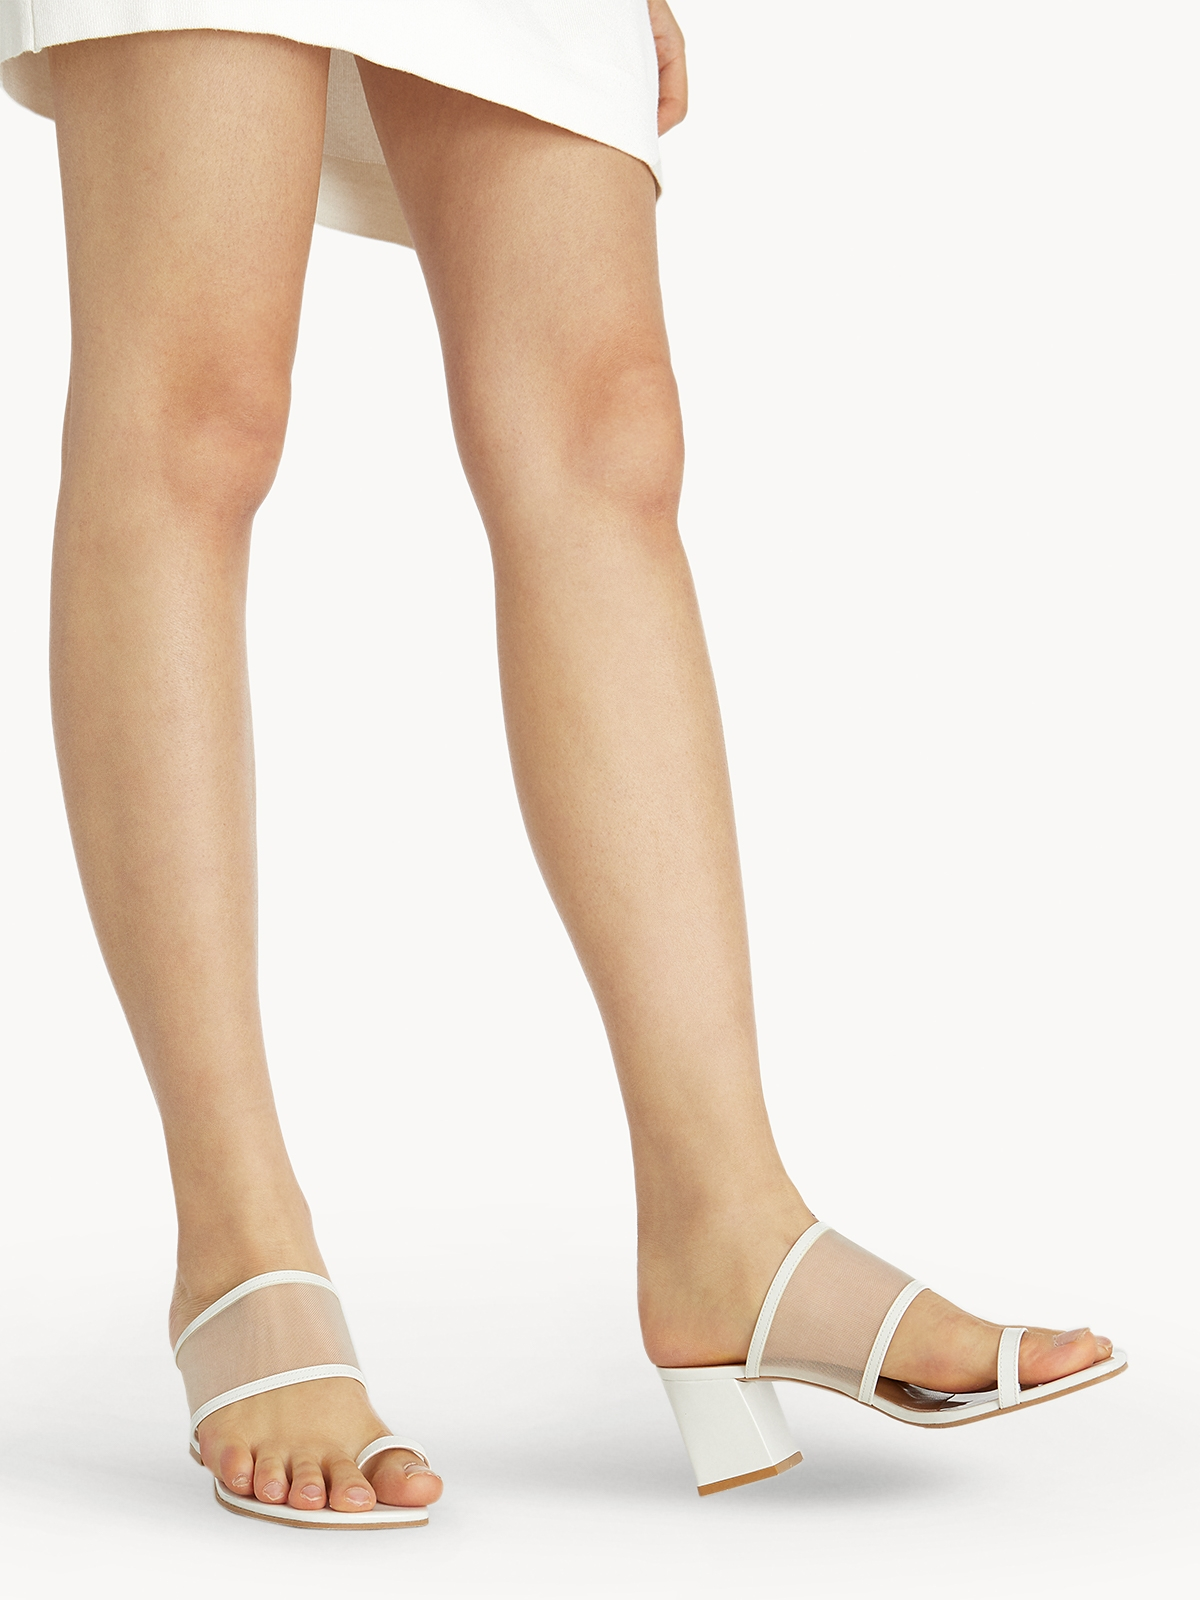 Prove Toe Ring Heeled Sandals White